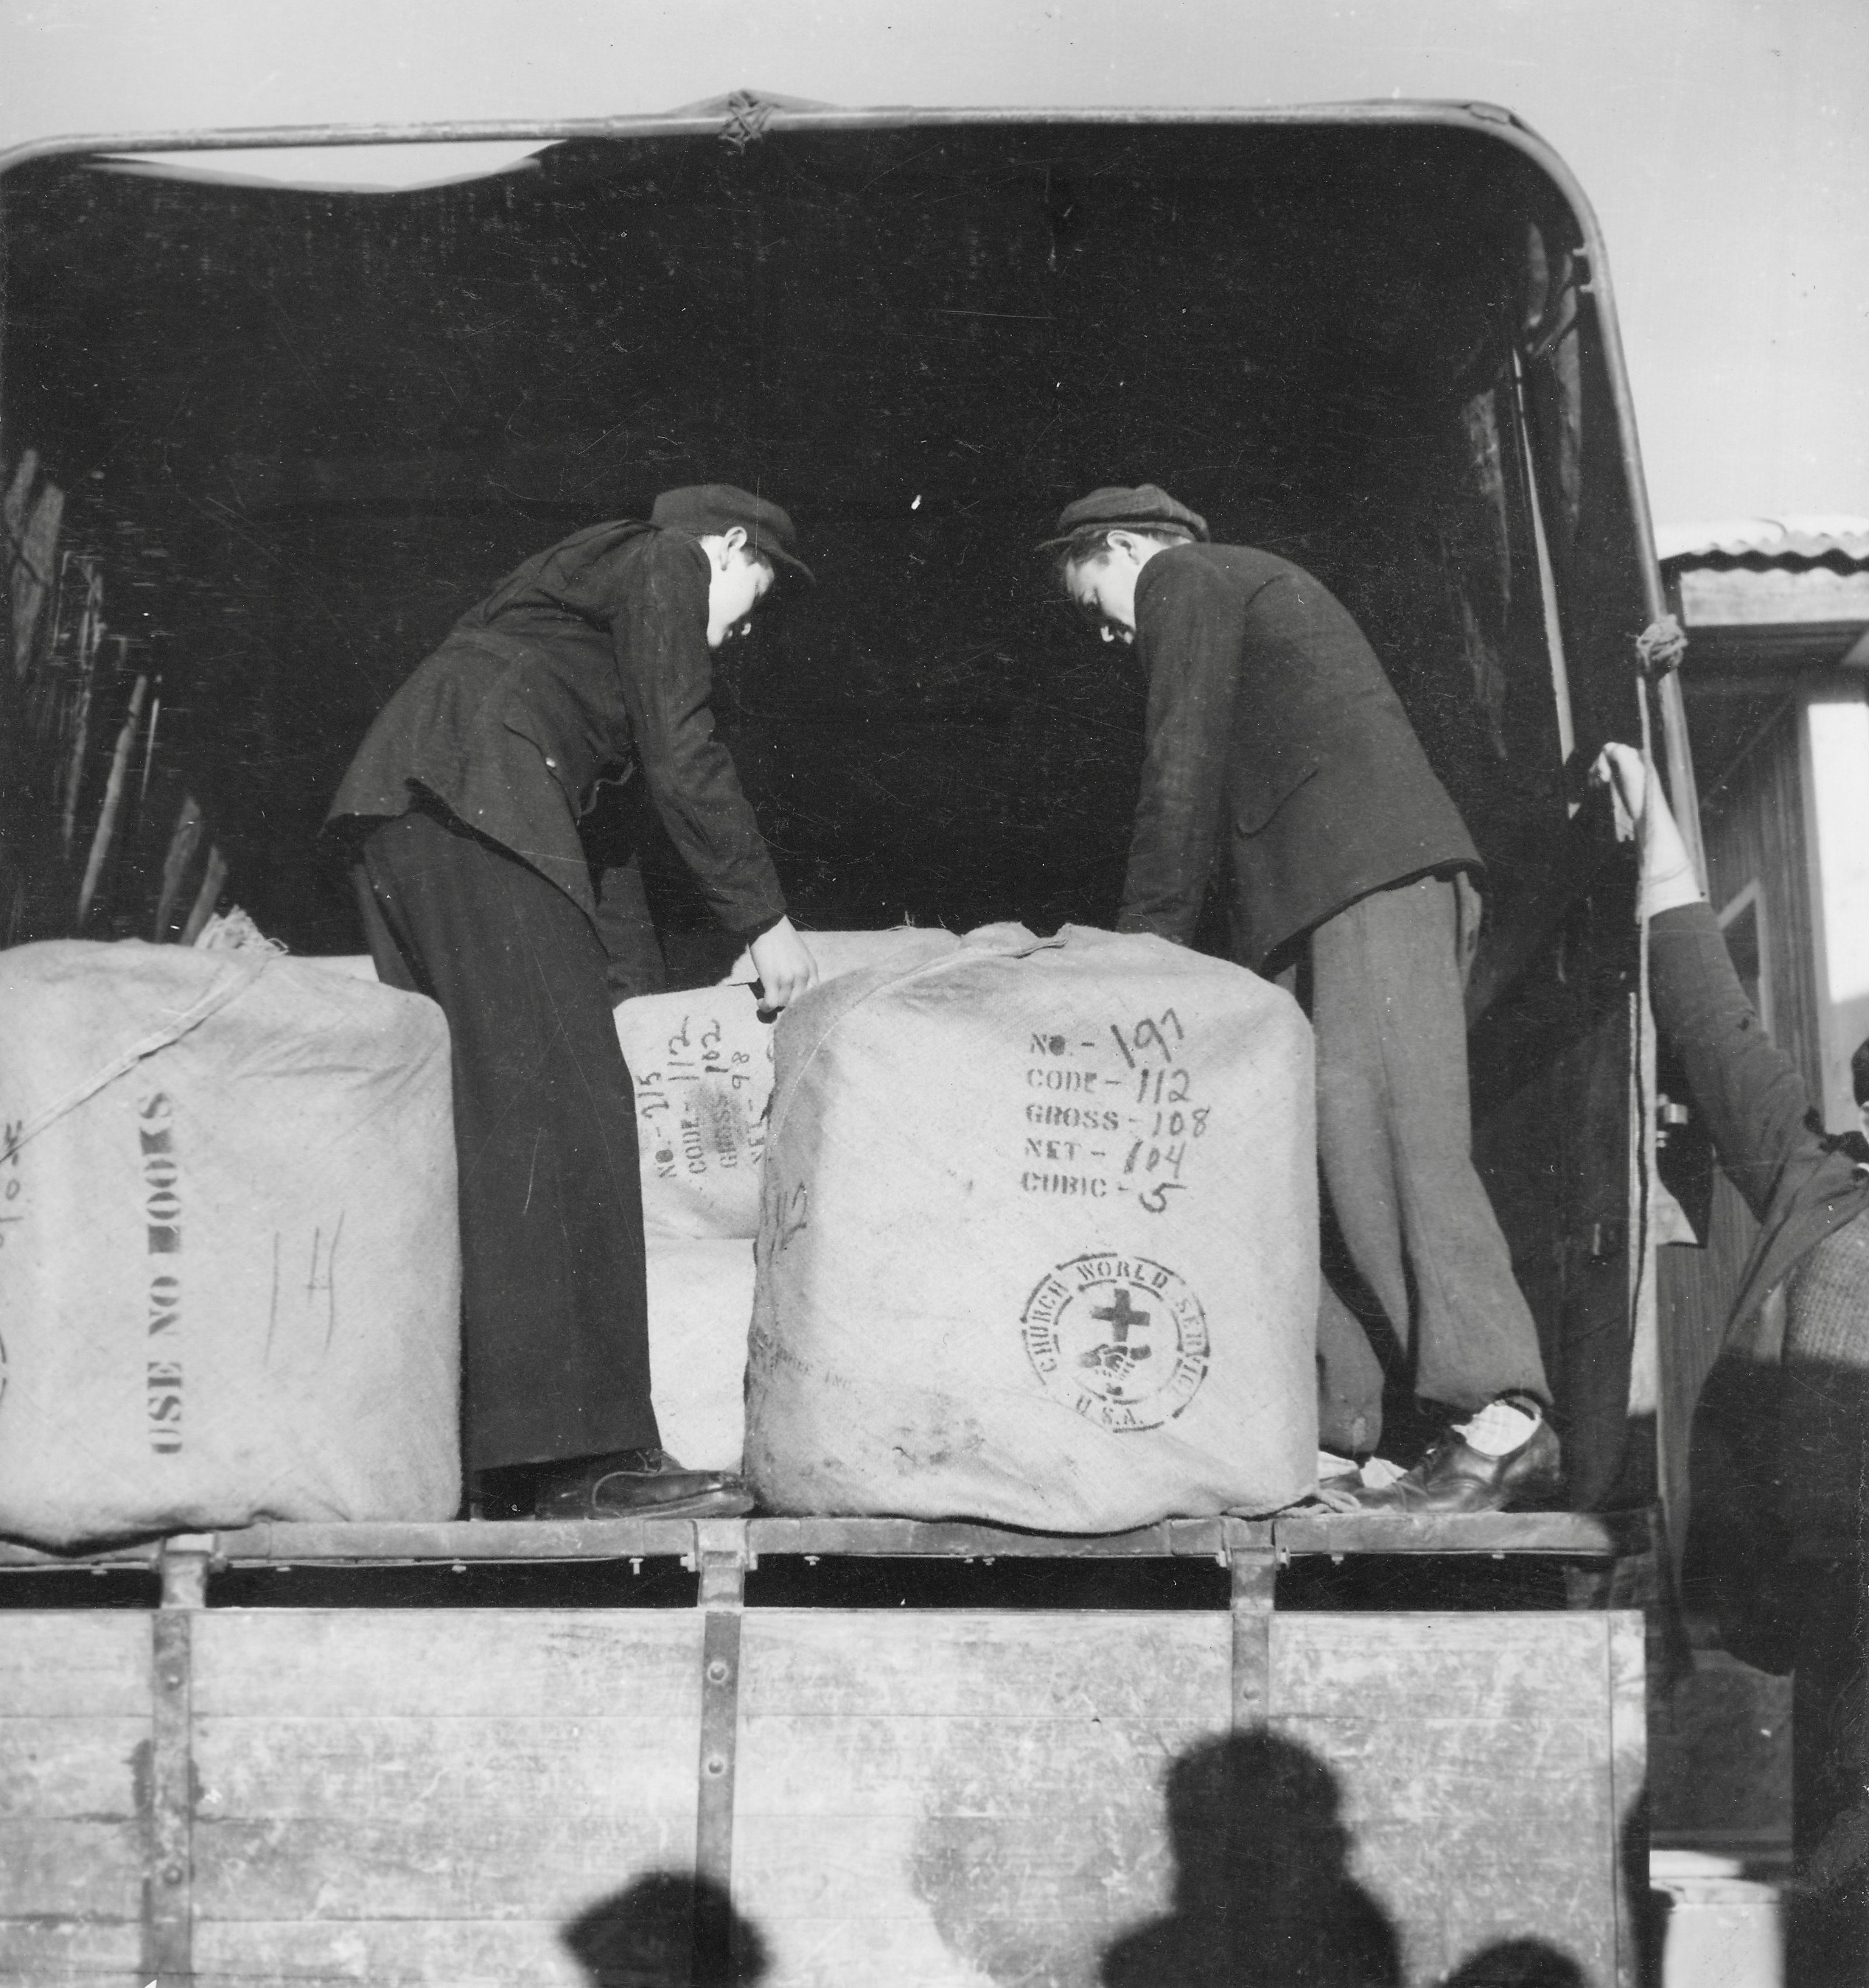 San Sabba, clothing bales from WCC in America 1950-51